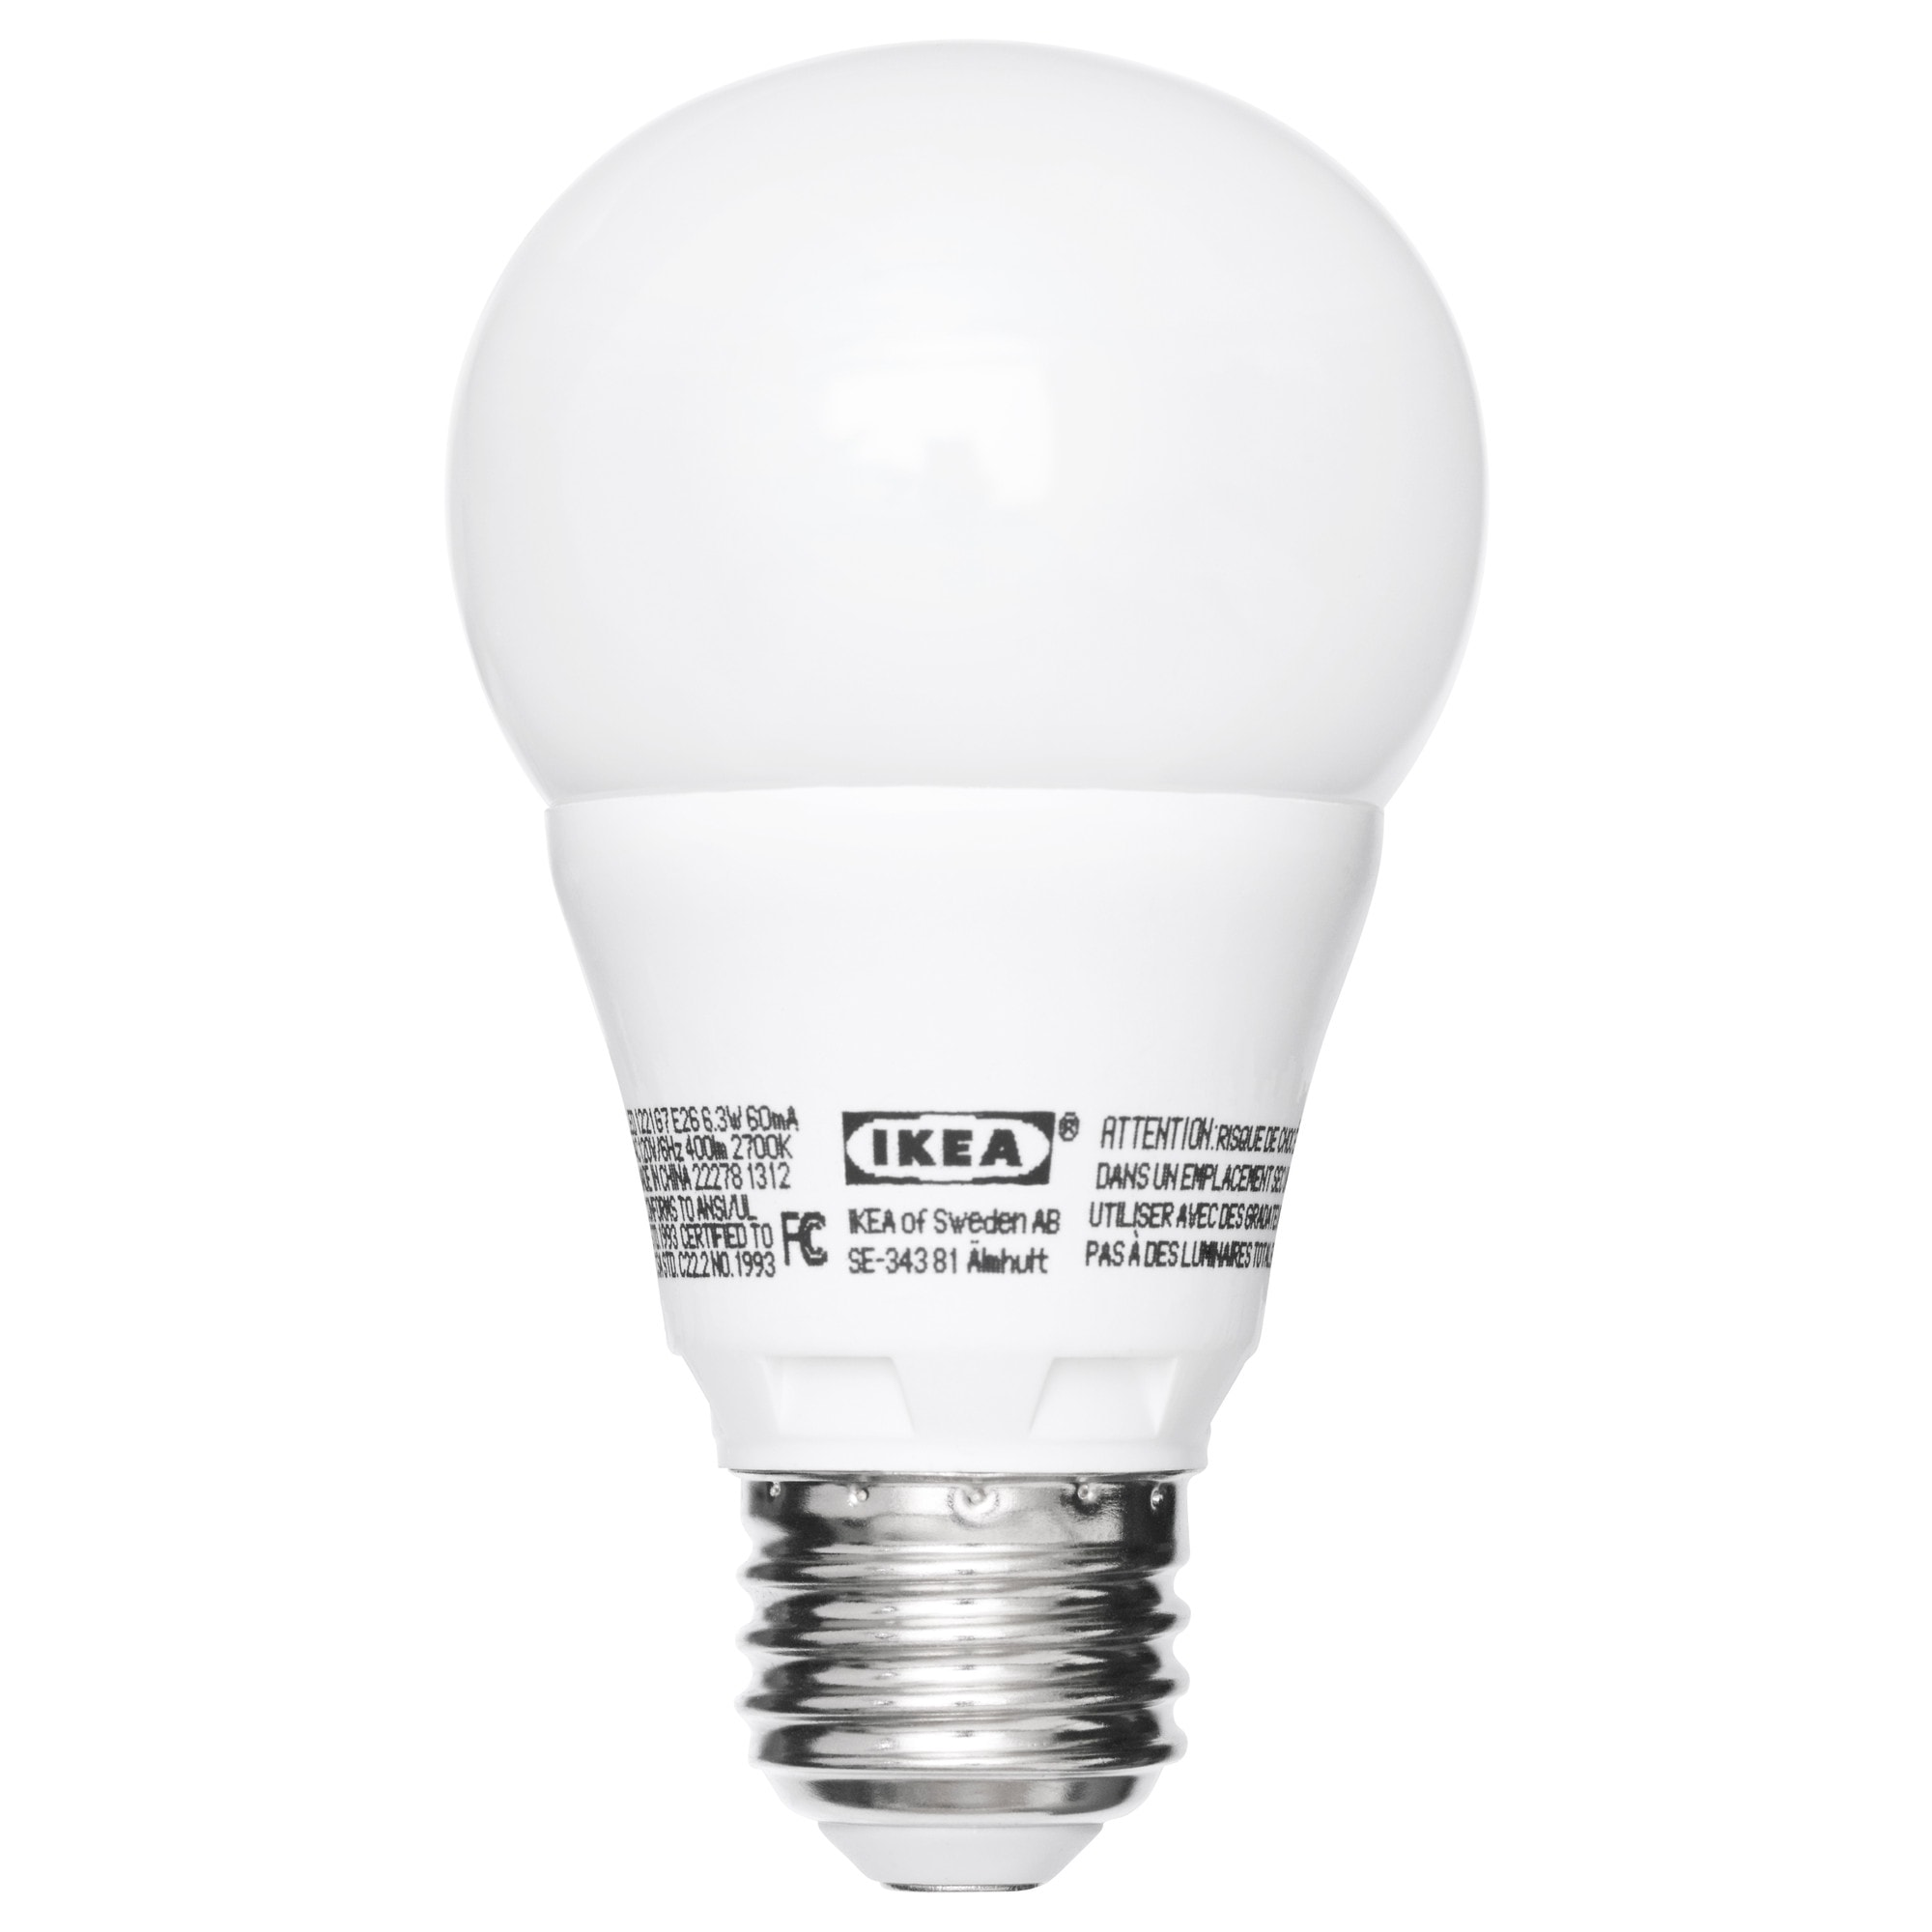 LEDARE LED bulb E26 400 lumen, dimmable, globe opal Luminous flux: 400 Lumen